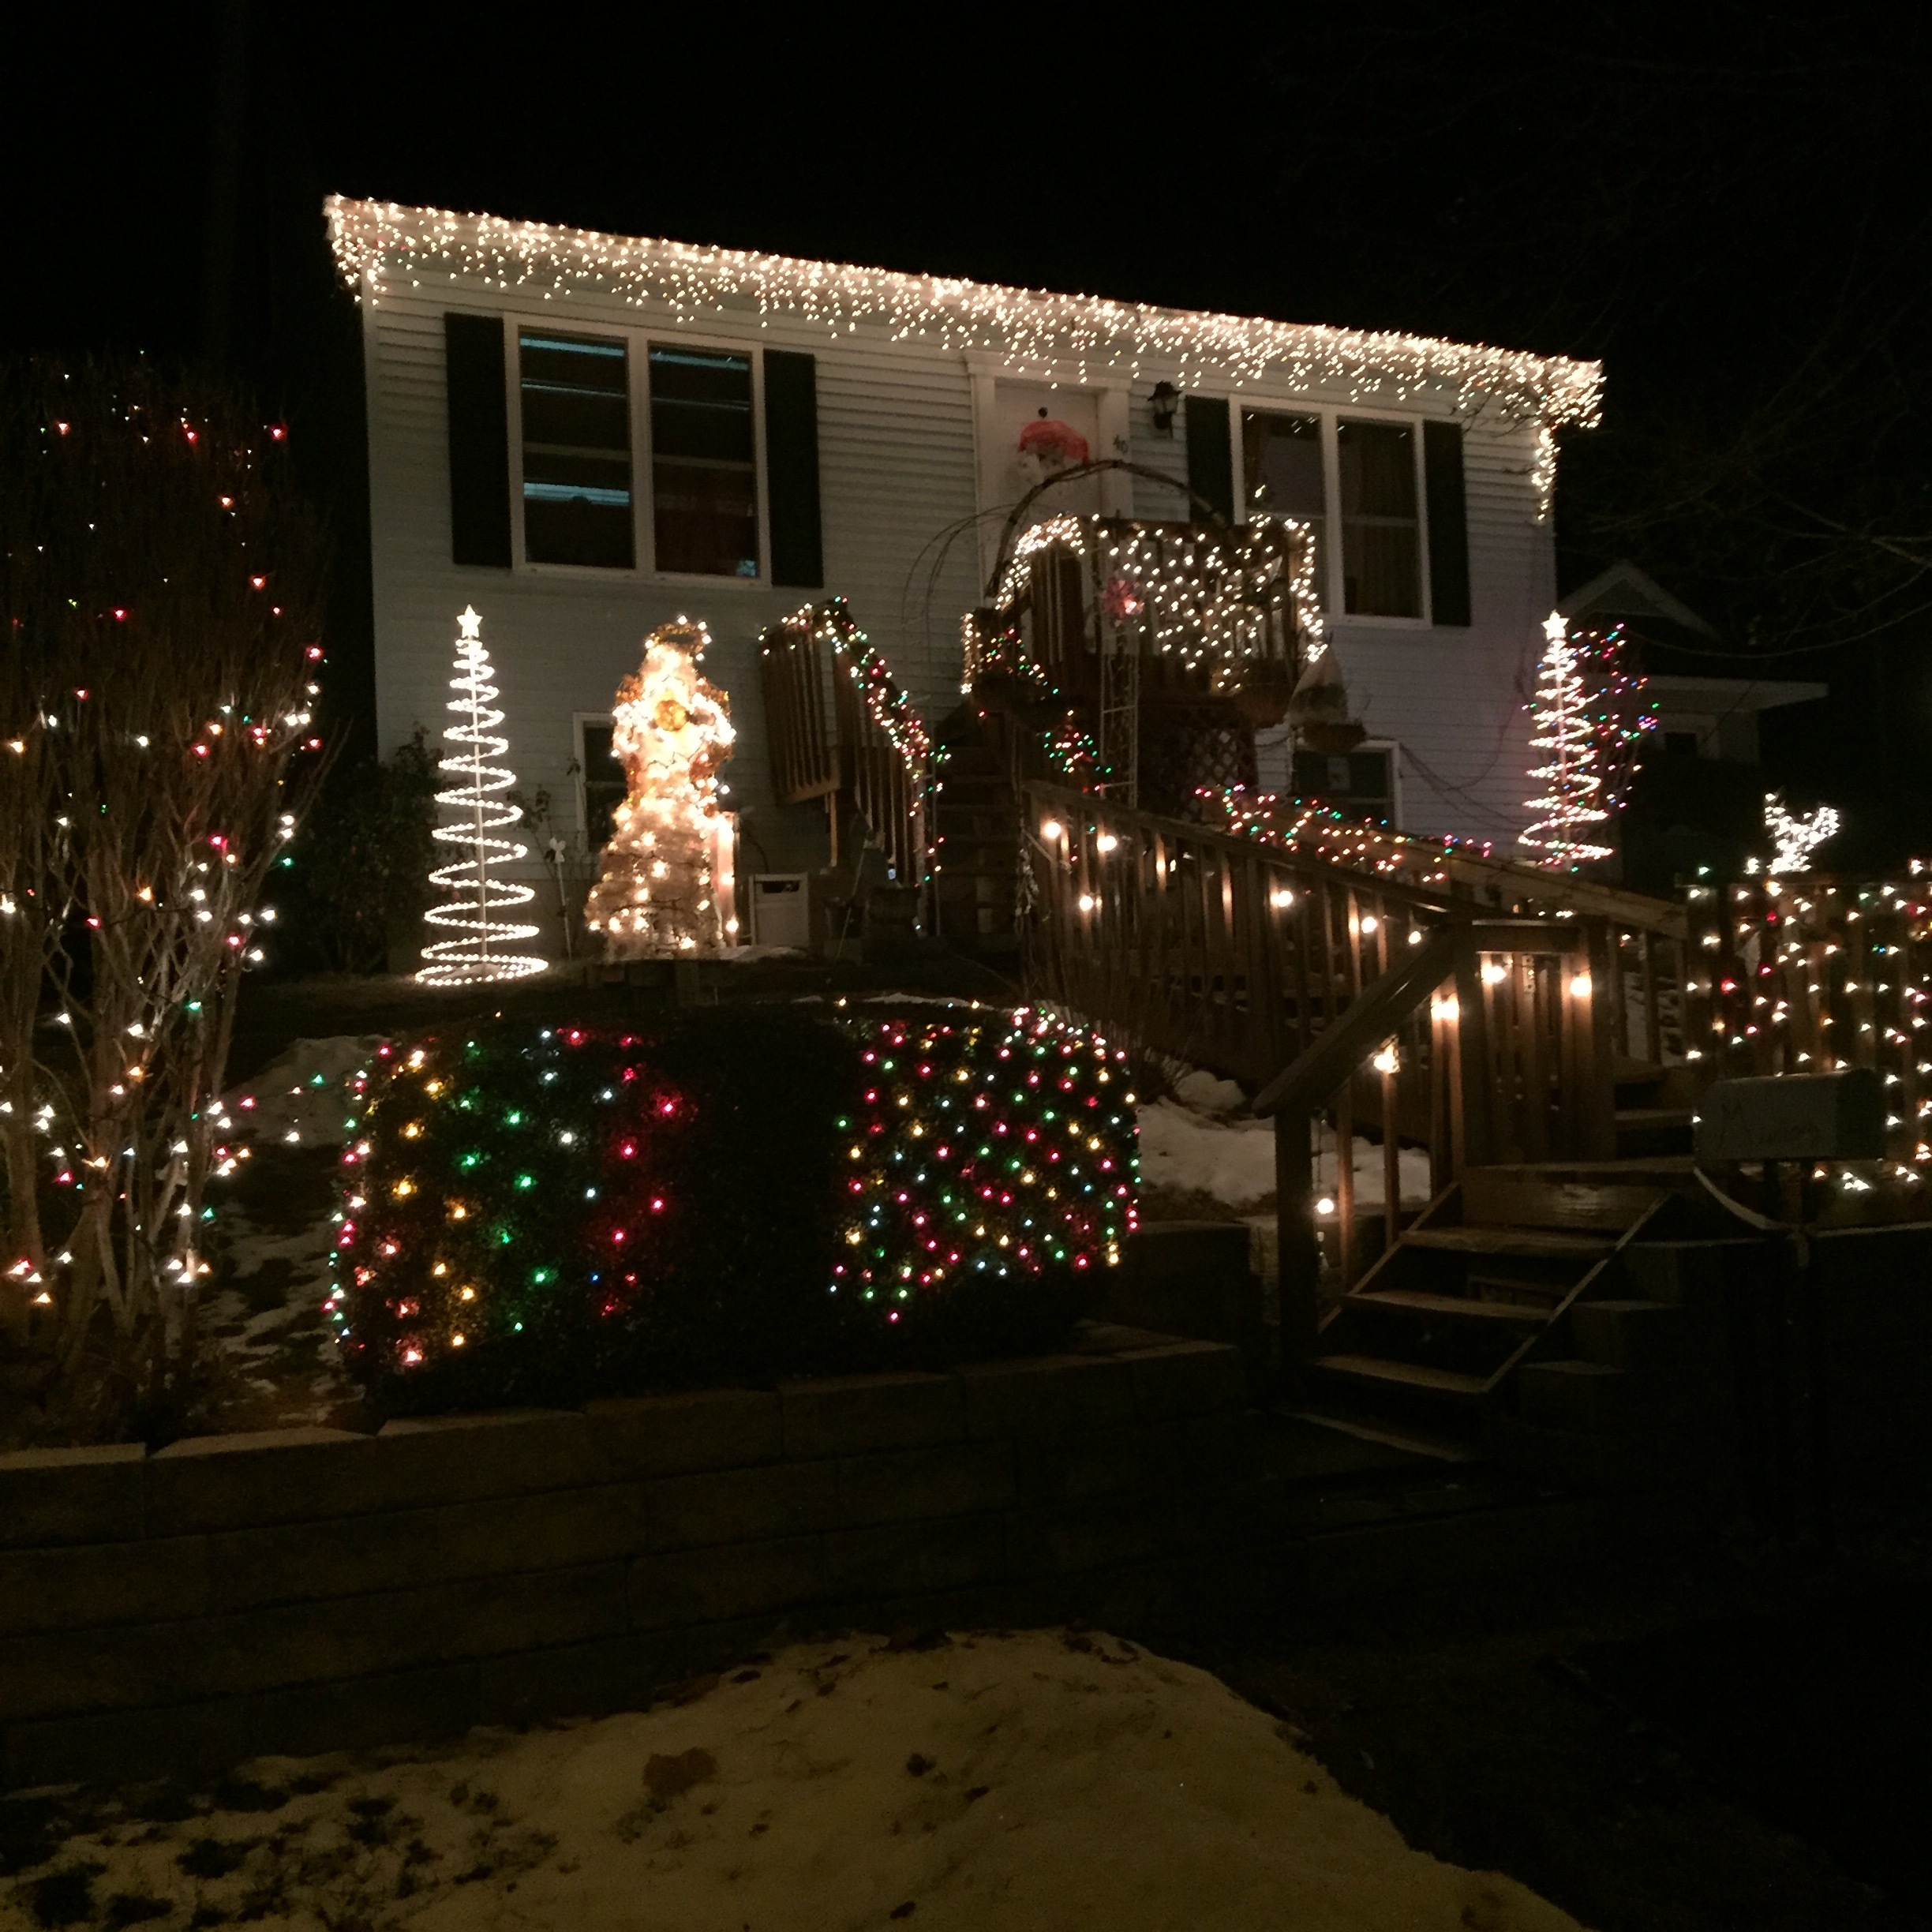 Christmas Lights On Houses.Christmas Lights On Houses In Beacon 2017 A Little